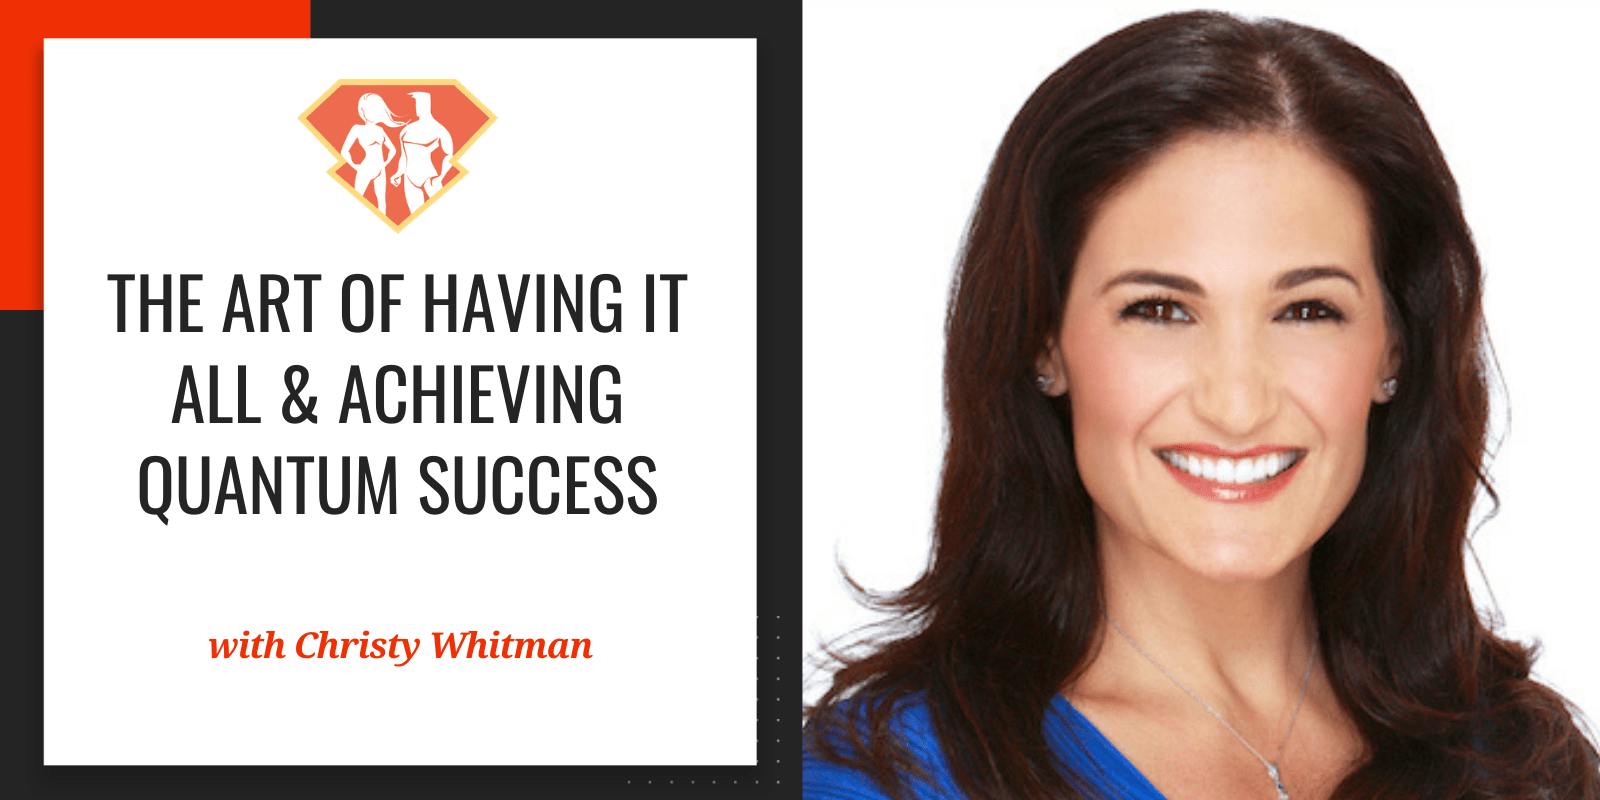 Christy Whitman On The Art Of Having It All & Achieving Quantum Success